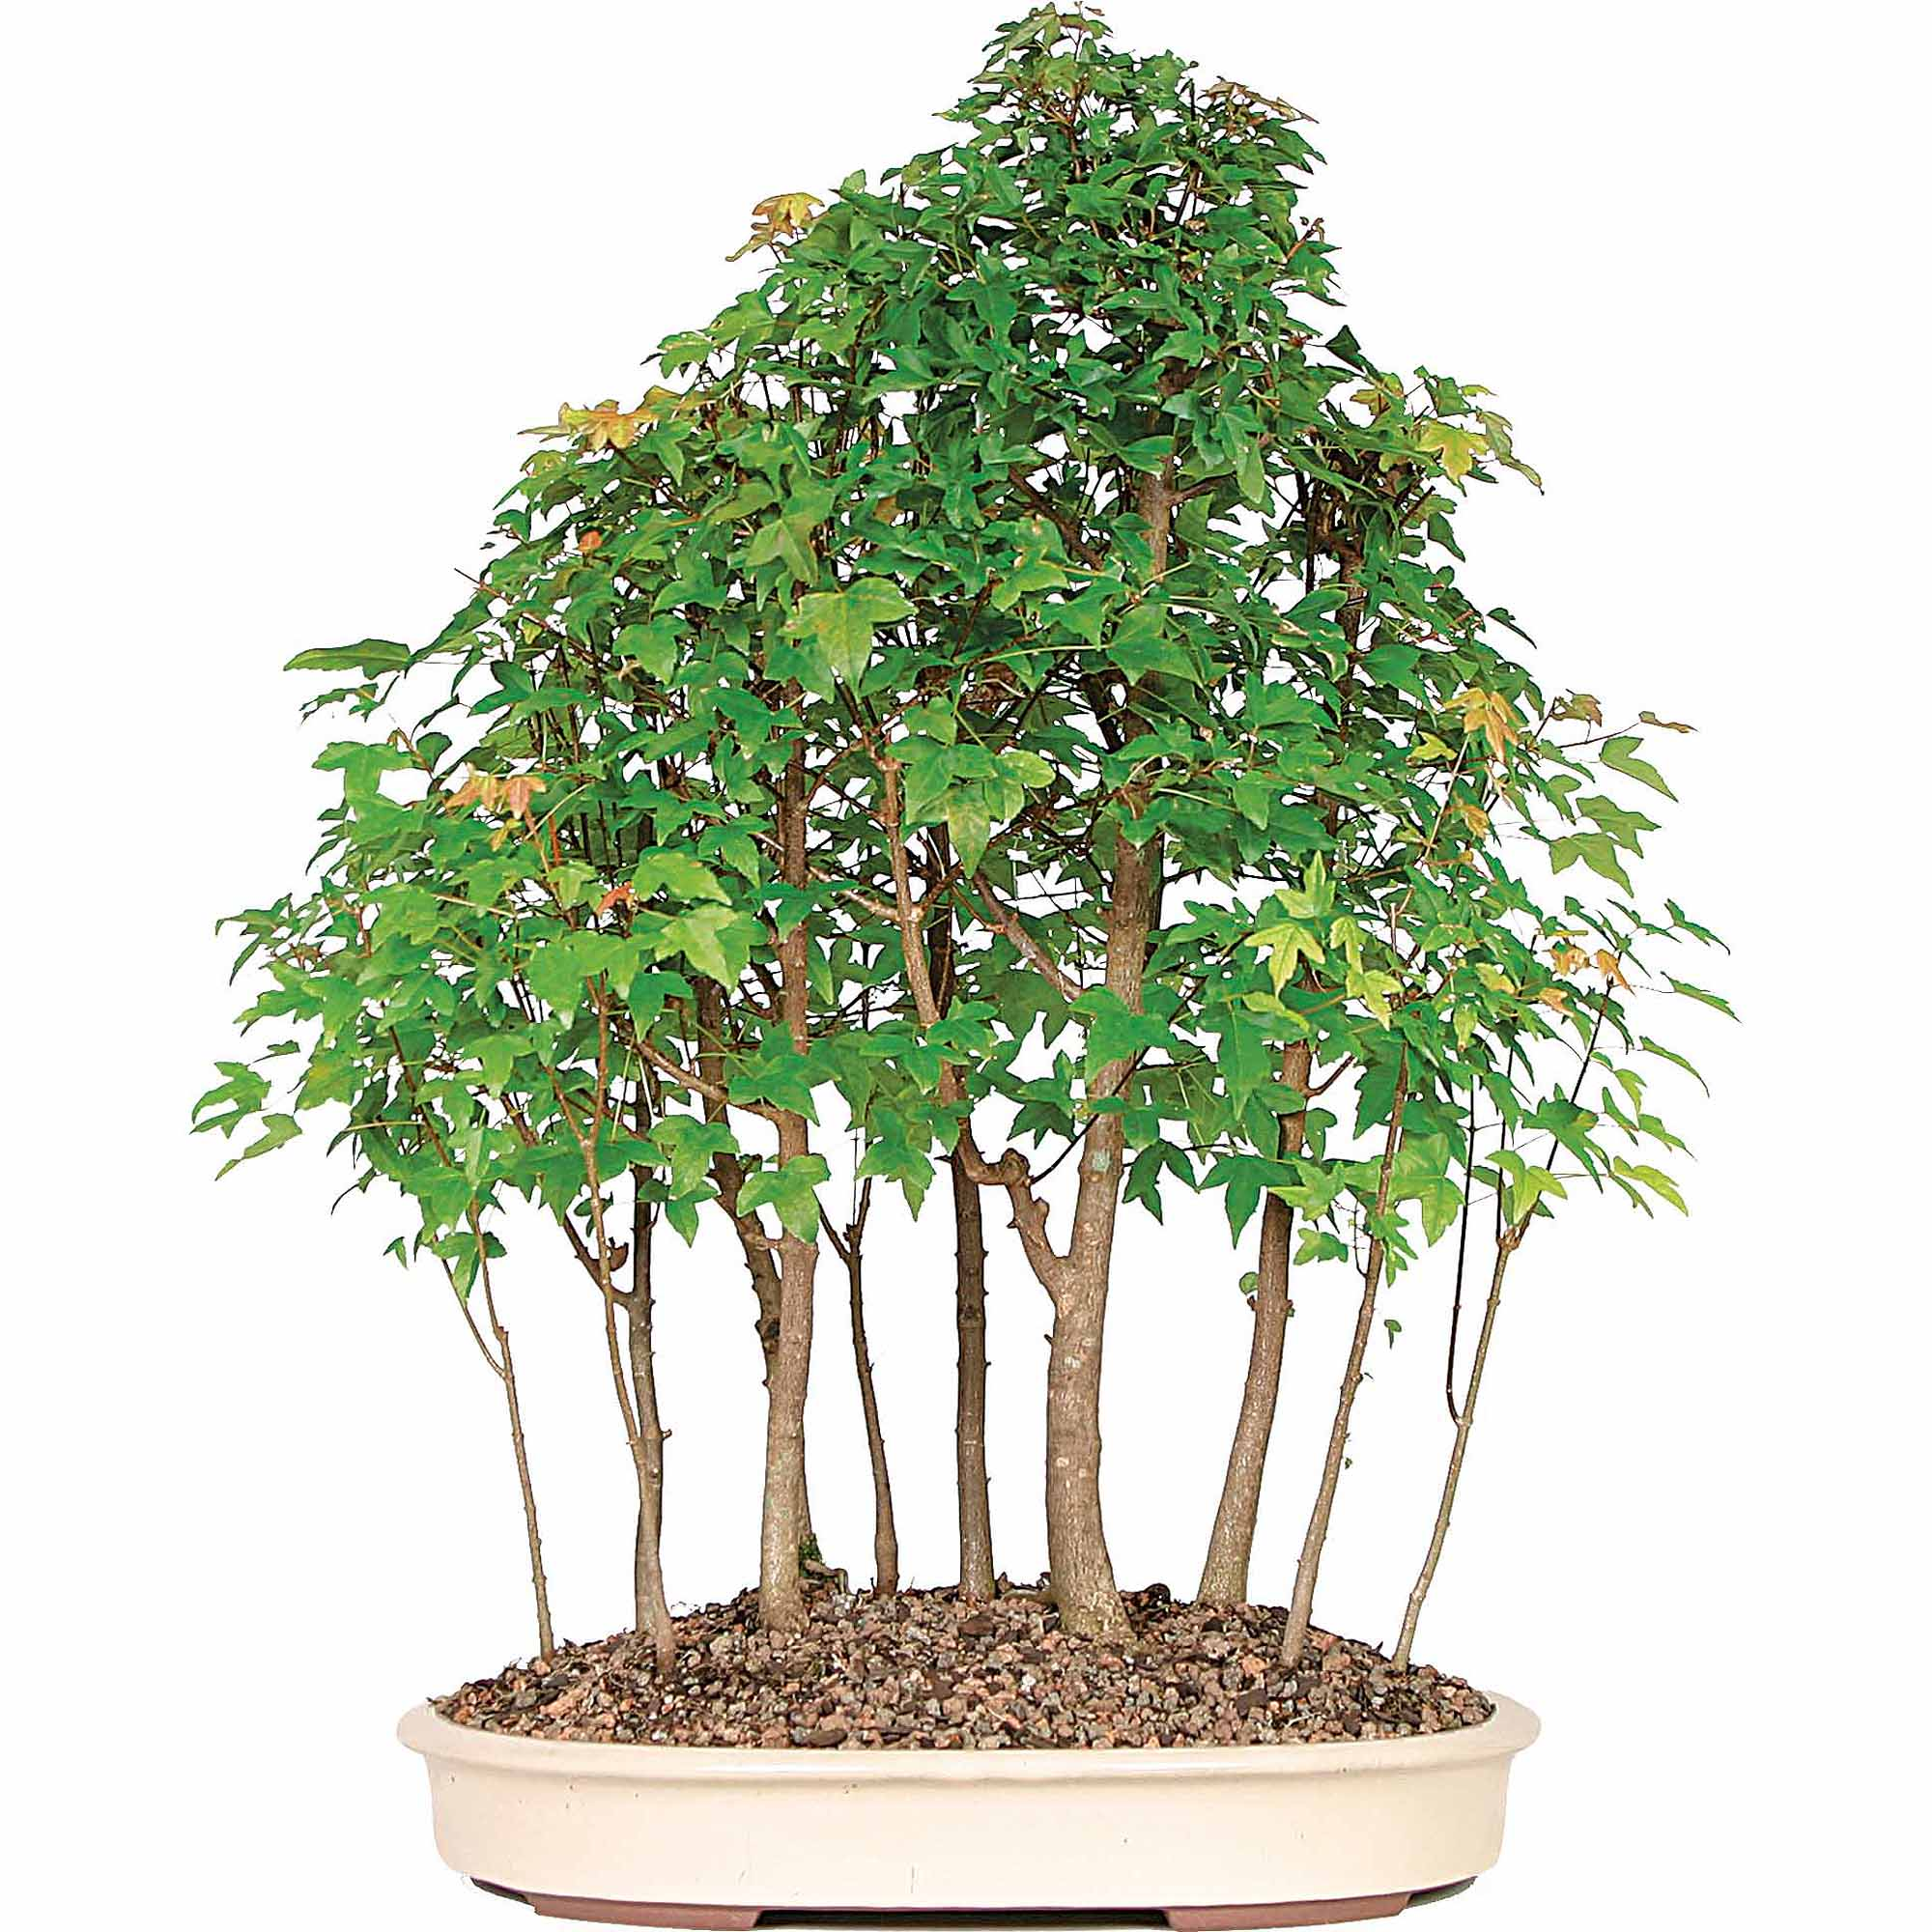 Trident Maple Bonsai Tree Grove by Brussel's Bonsai